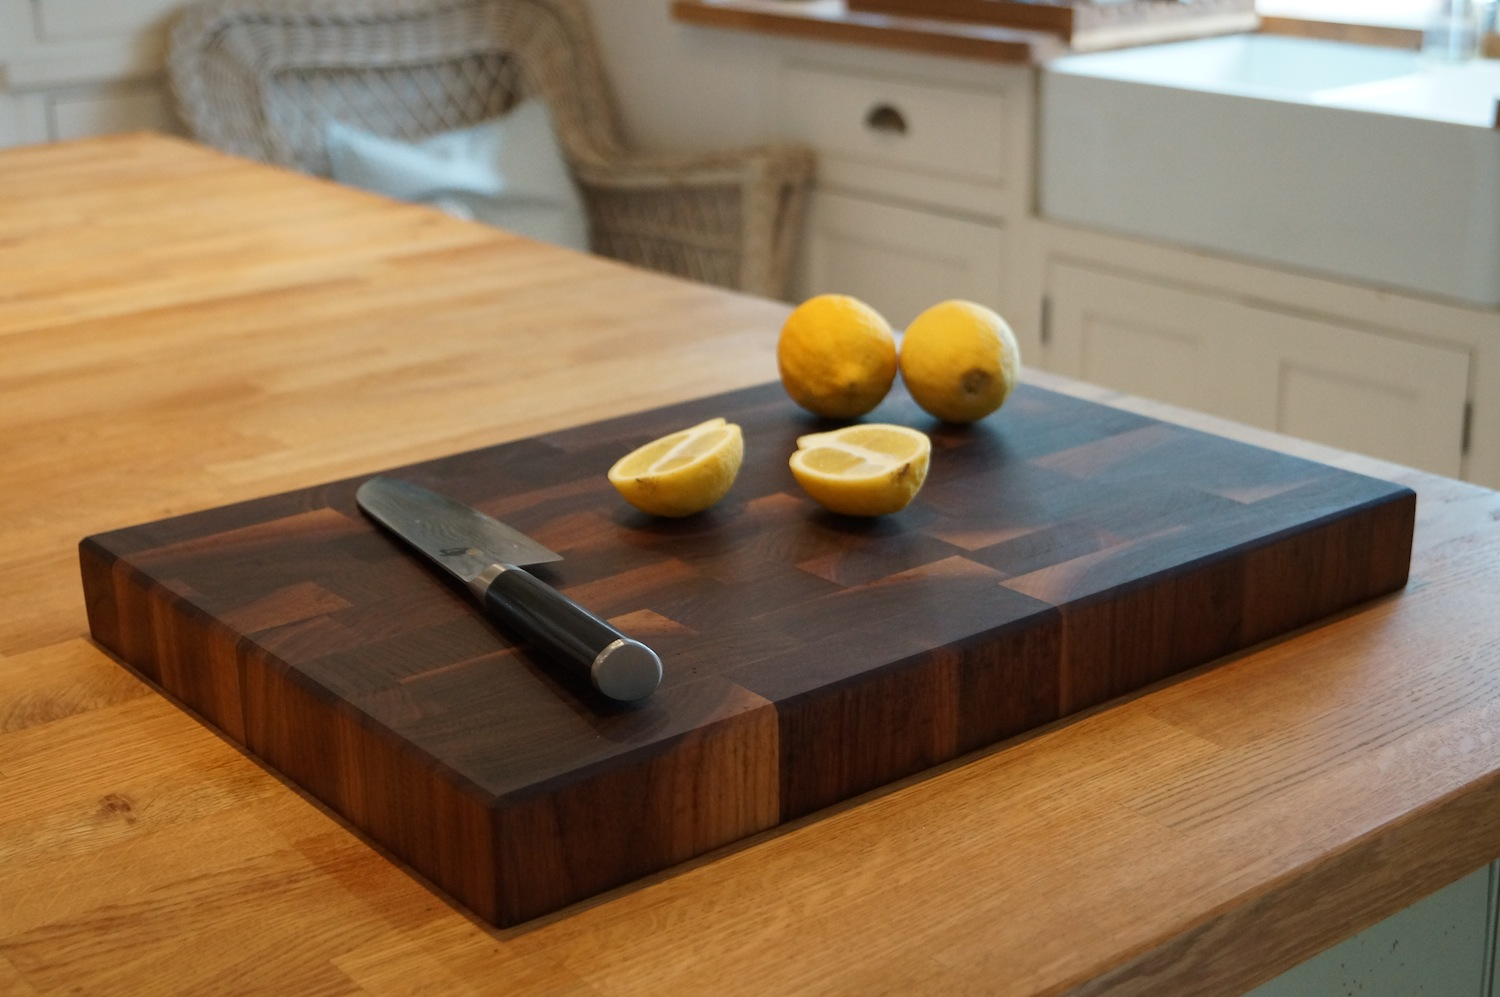 LARGE Rectangular Cutting Board for Food Preparation and Presentation - Premium Solid Natural Olive Wood Reversible Chopping Board MADE IN ITALY - Perfect in kitchen, on table or to share food at part.